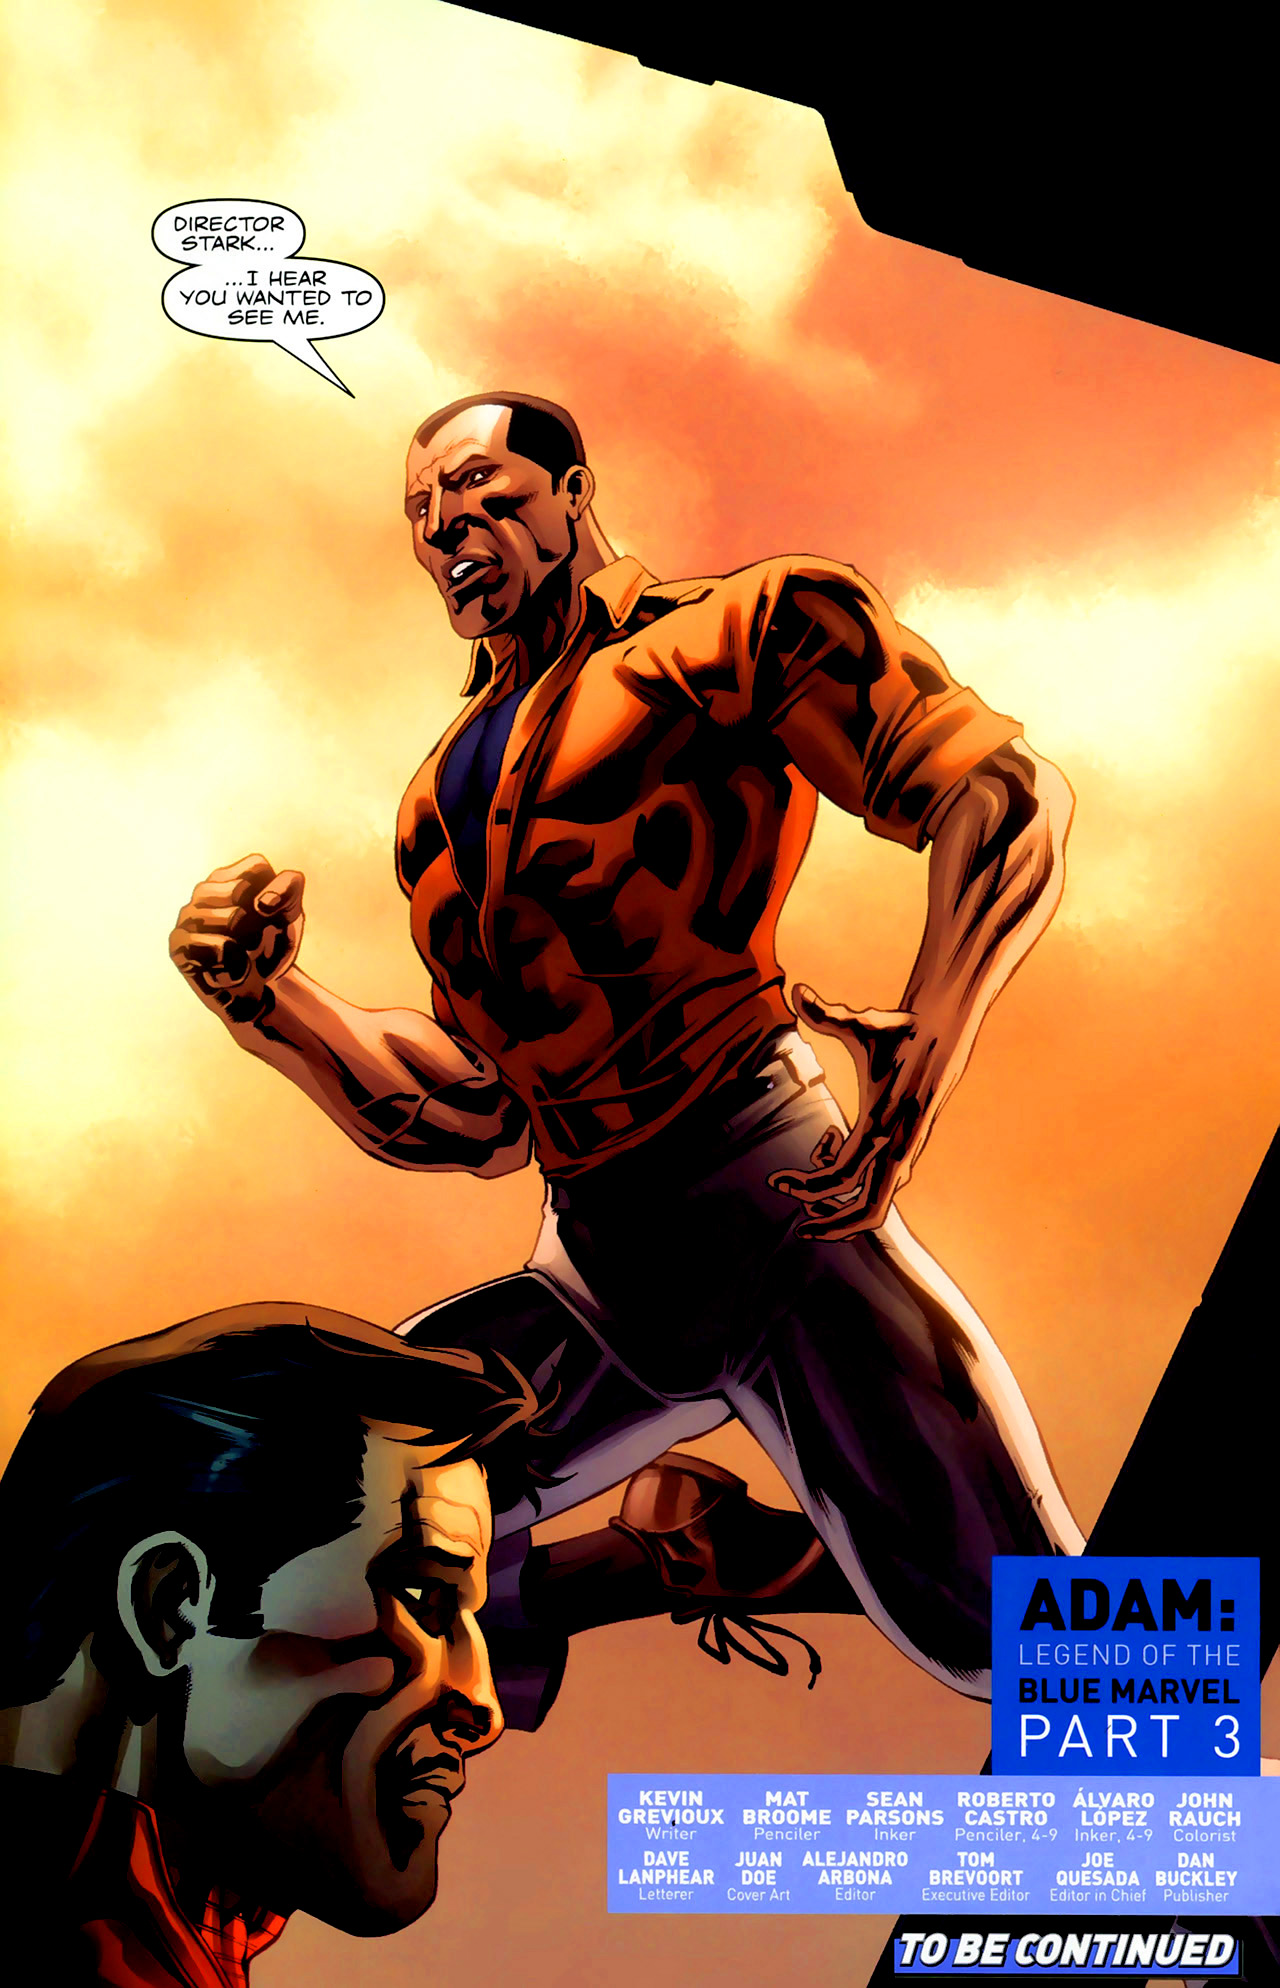 Read online Adam: Legend of the Blue Marvel comic -  Issue #3 - 23